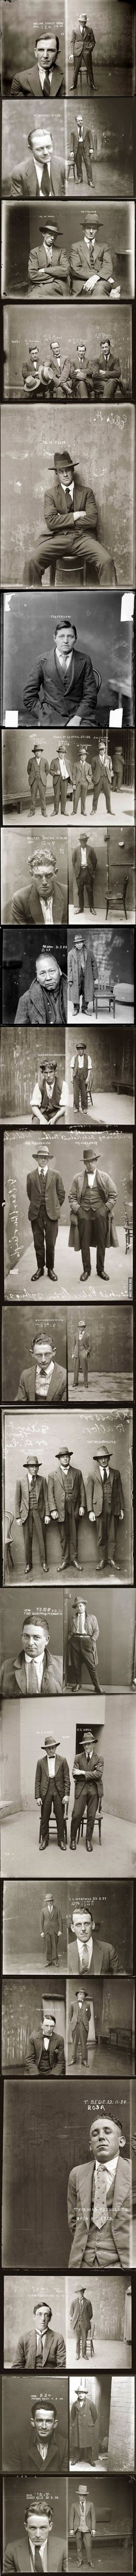 Let's take a minute to appreciate how awesome police mugshots were in the 1920s.